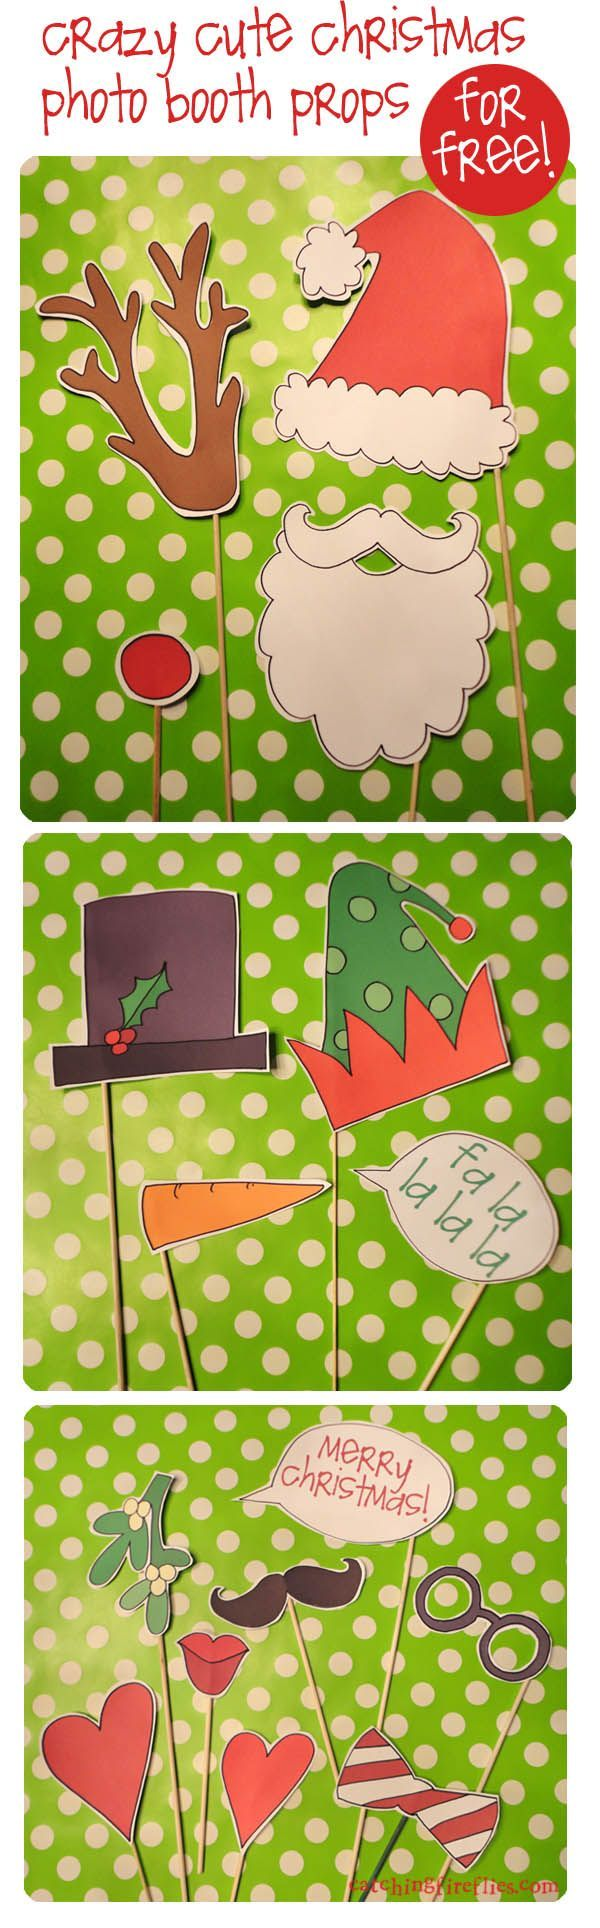 Free Printable SUPER Christmas photo booth props